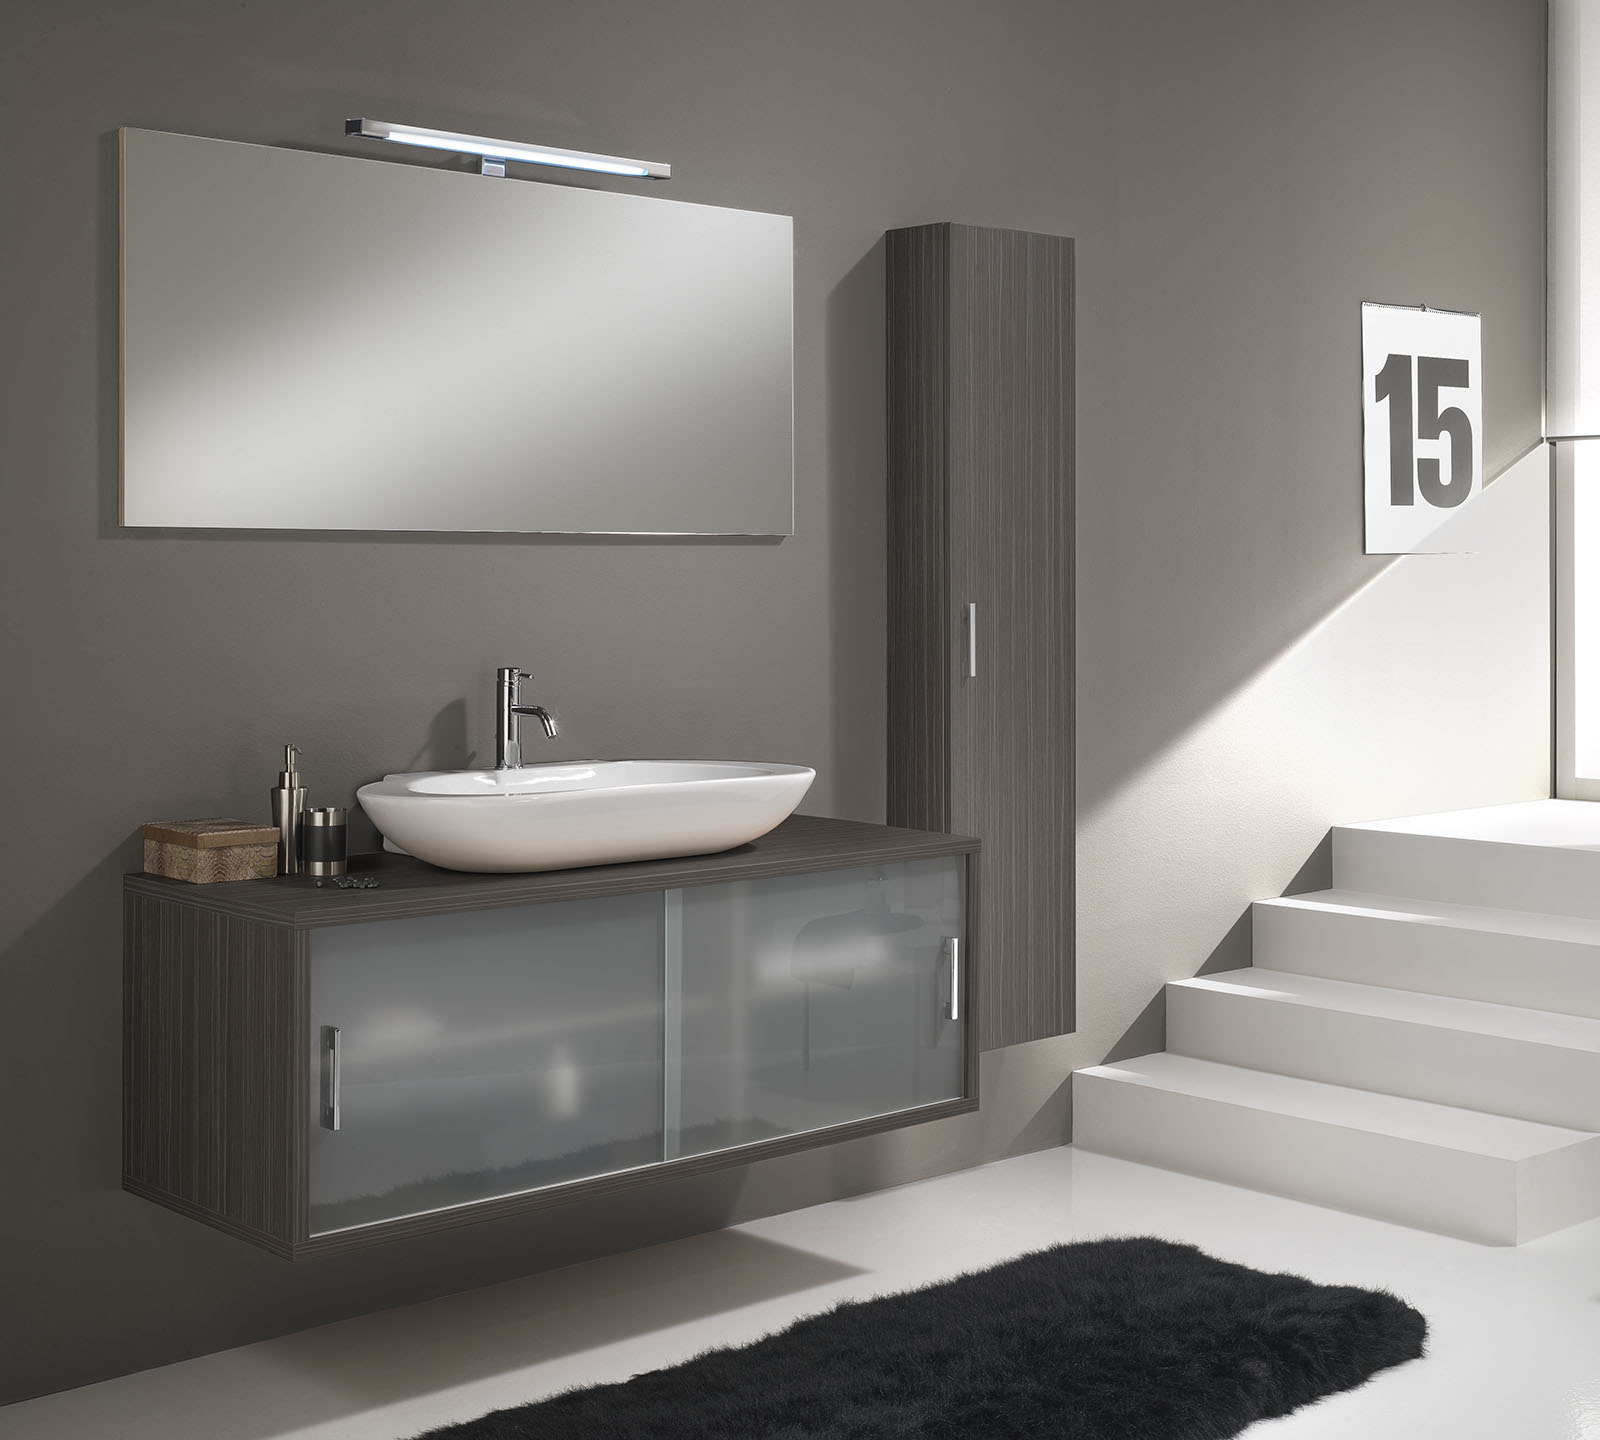 https://s3-eu-west-1.amazonaws.com/duzzle/production/spree/products/2425/original/duzzle-arredo-bagno-tft-giava-pino-grigio-gv06pg.jpg?1524073773